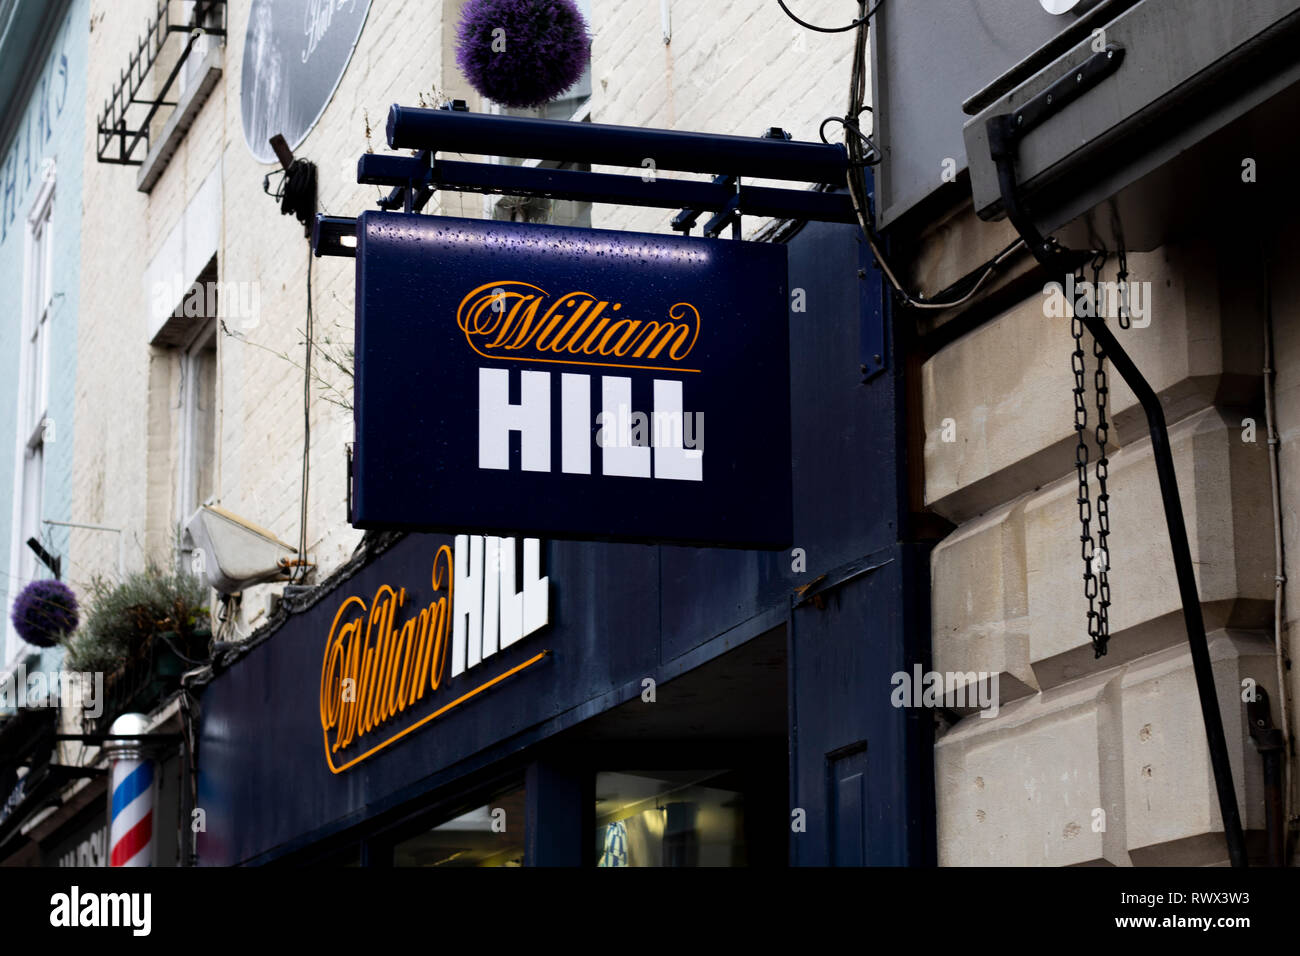 William Hill bookmakers sign, company founded by William Hill in 1934 at a time when gambling was illegal in Britain Stock Photo